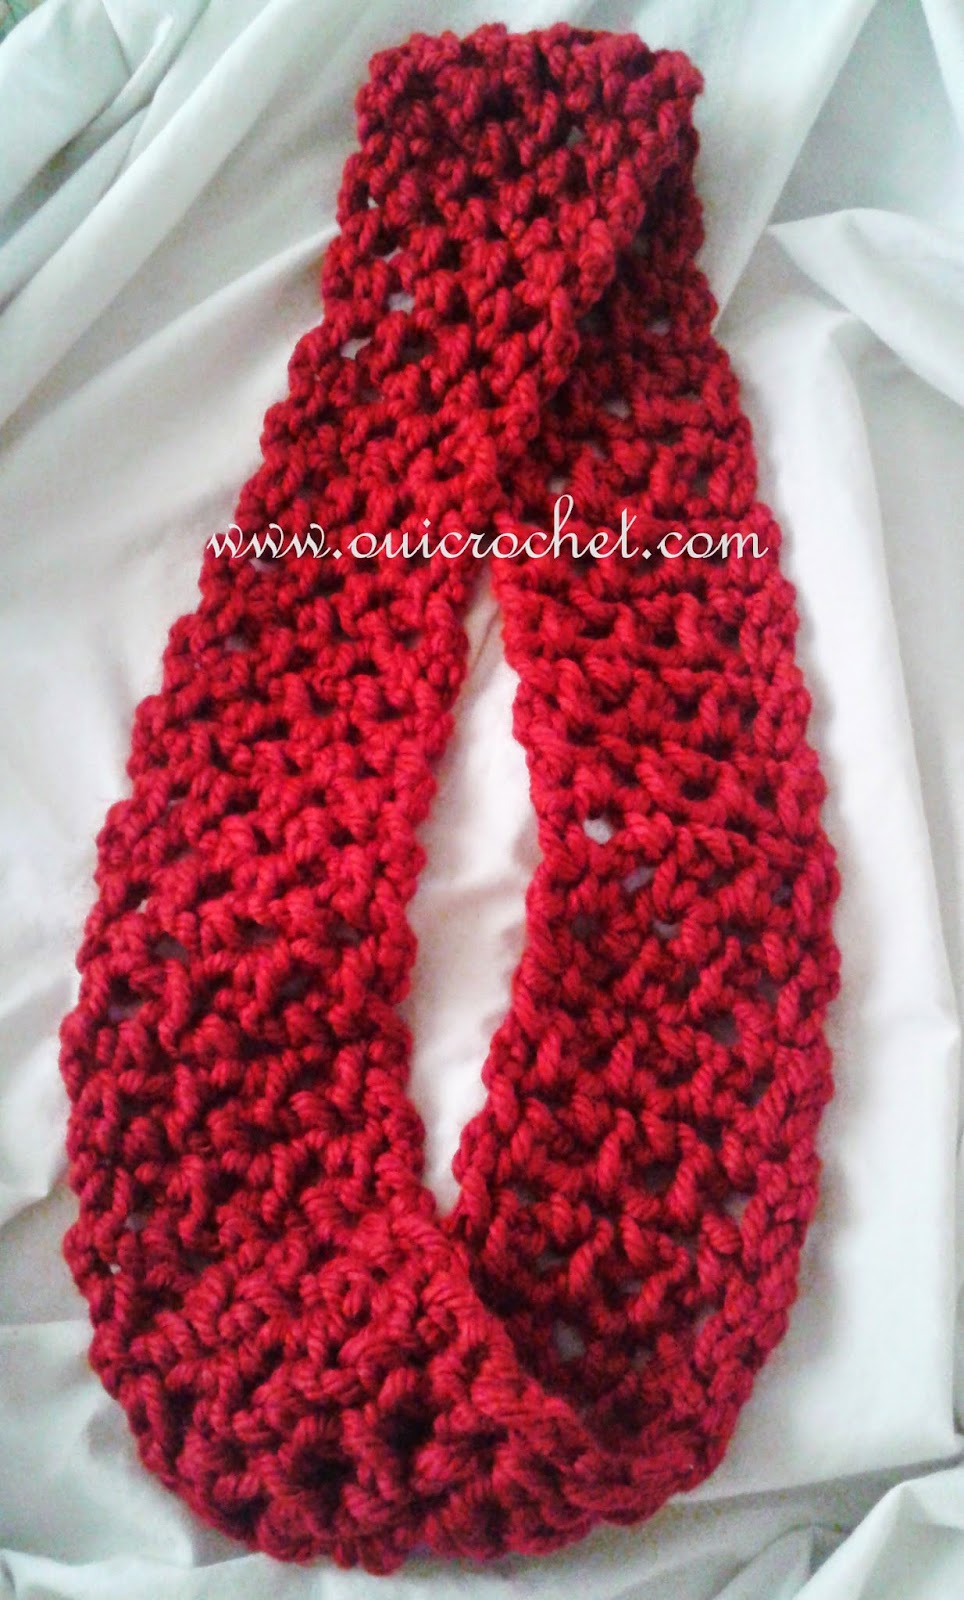 Crochet Shawl Patterns Bulky Yarn : Oui Crochet: Quick Infinity Scarf {Free Crochet Pattern}